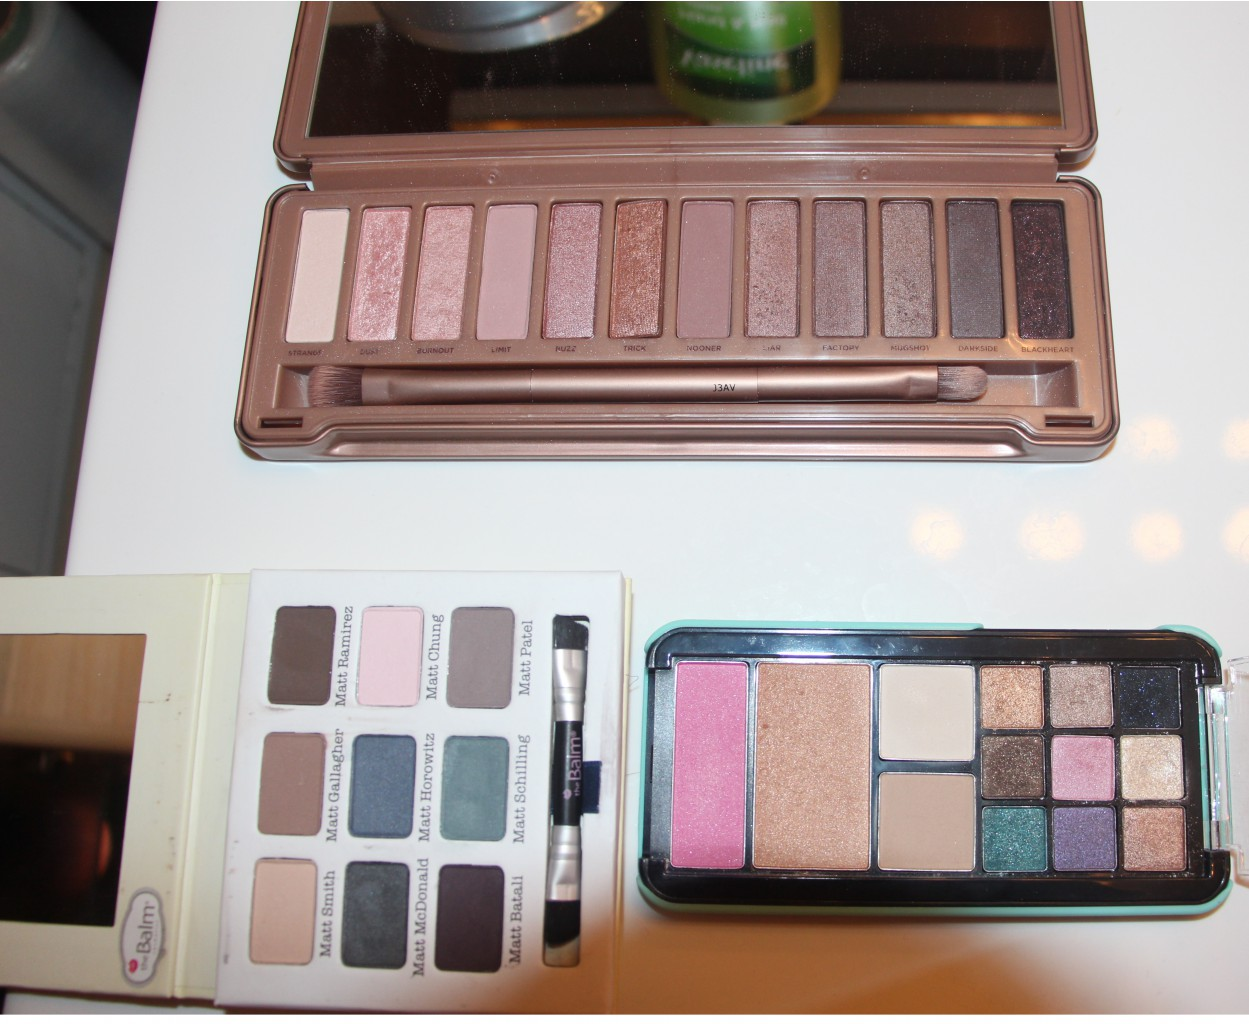 URBAN DECAY NAKED3 2000 р., theBalm Meet Matt(e) 1000 р., Too Faced 800 р.